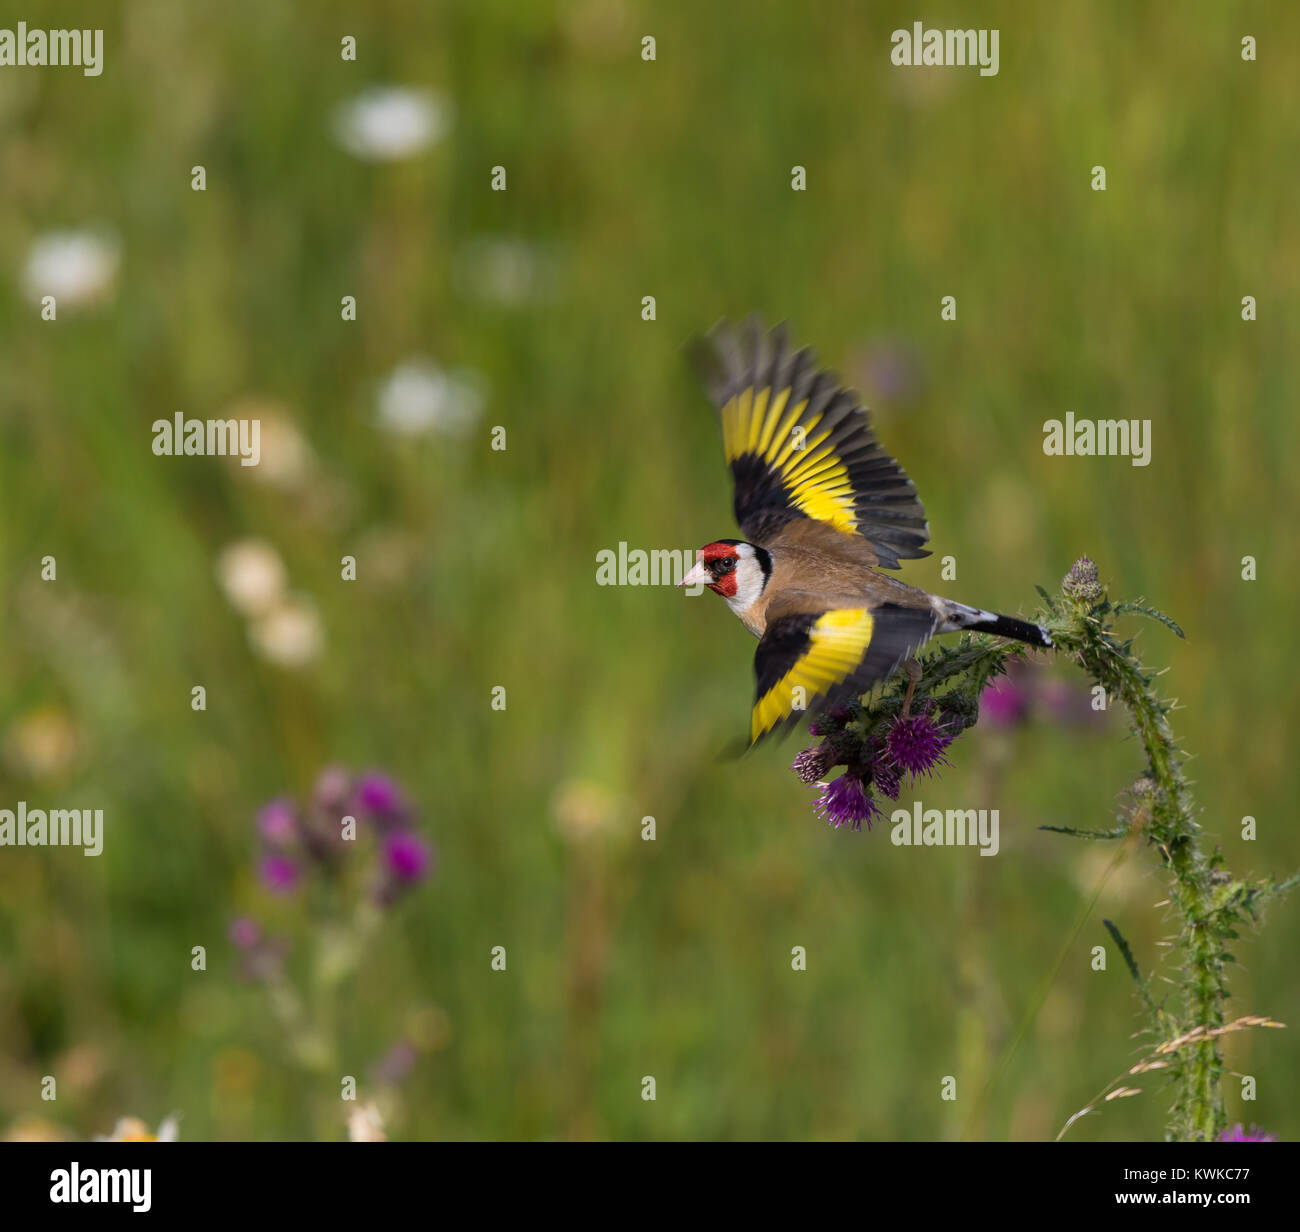 A goldfinch (Carduelis carduelis) with wings outstretched takes off from a common thistle plant. Effective motion Stock Photo